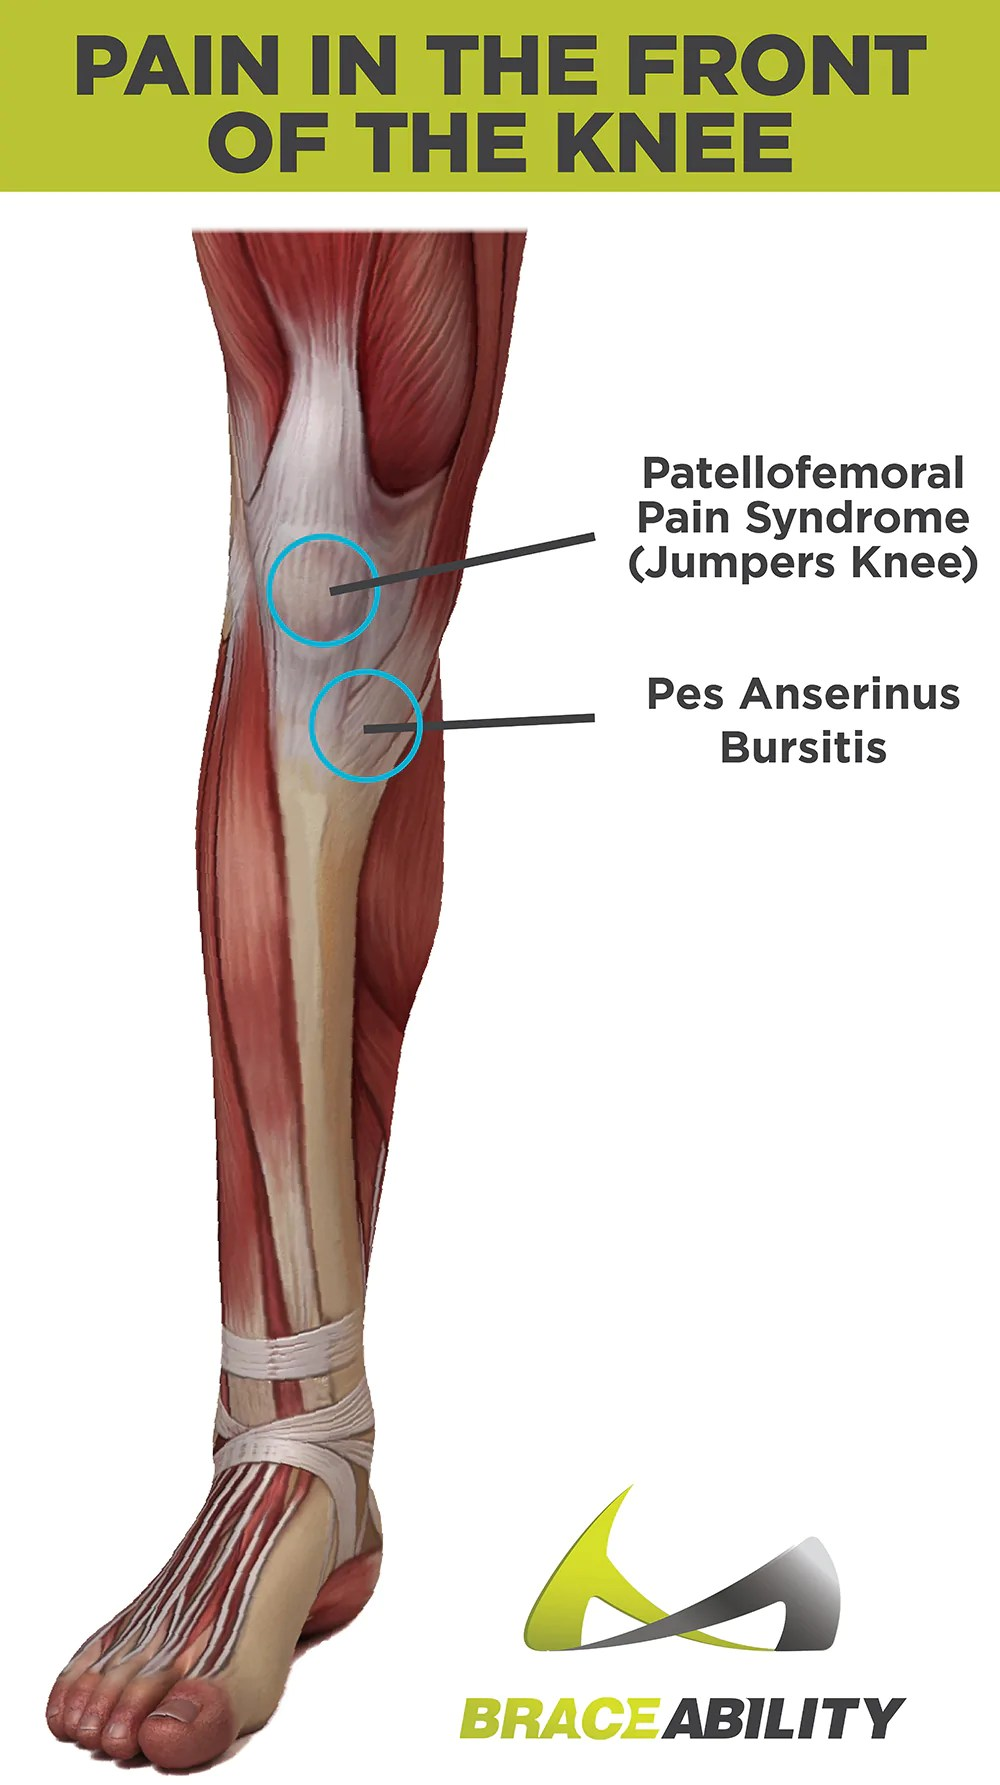 medium resolution of types of pain you feel in the front of your knee patellofemoral pain syndrome